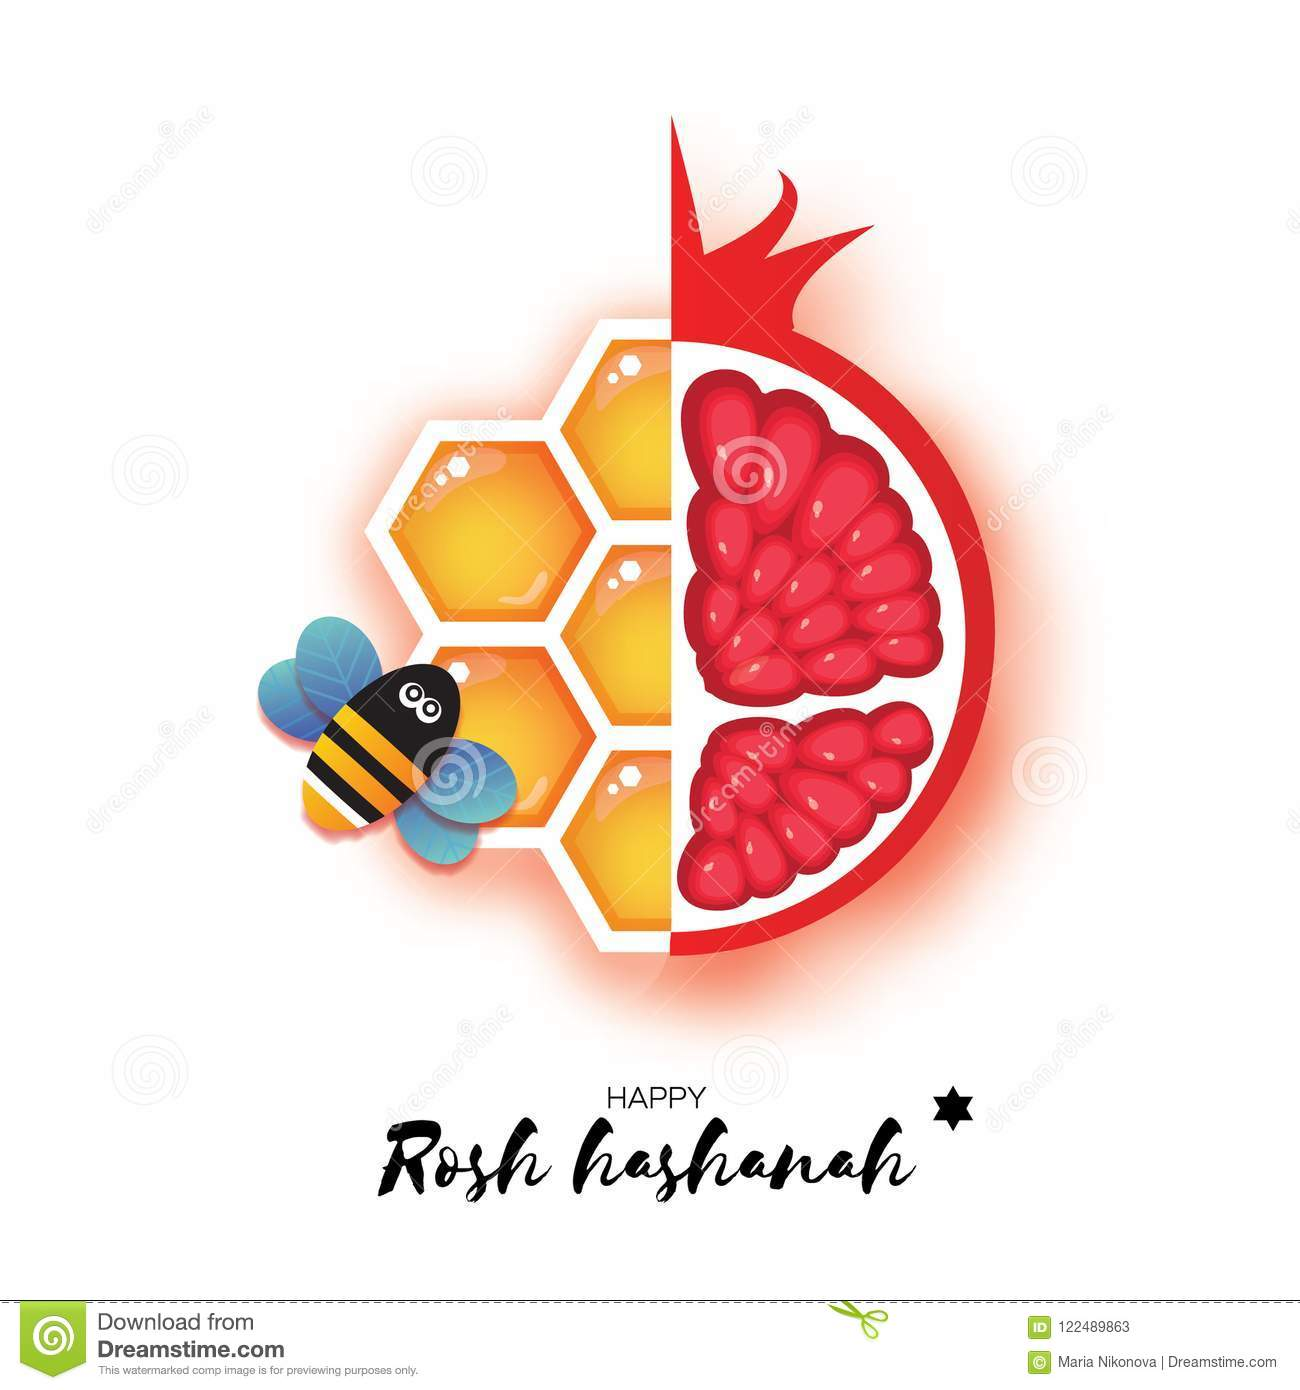 red ripe pomegranate and gold honeycomb jewish new year rosh hashanah greeting card